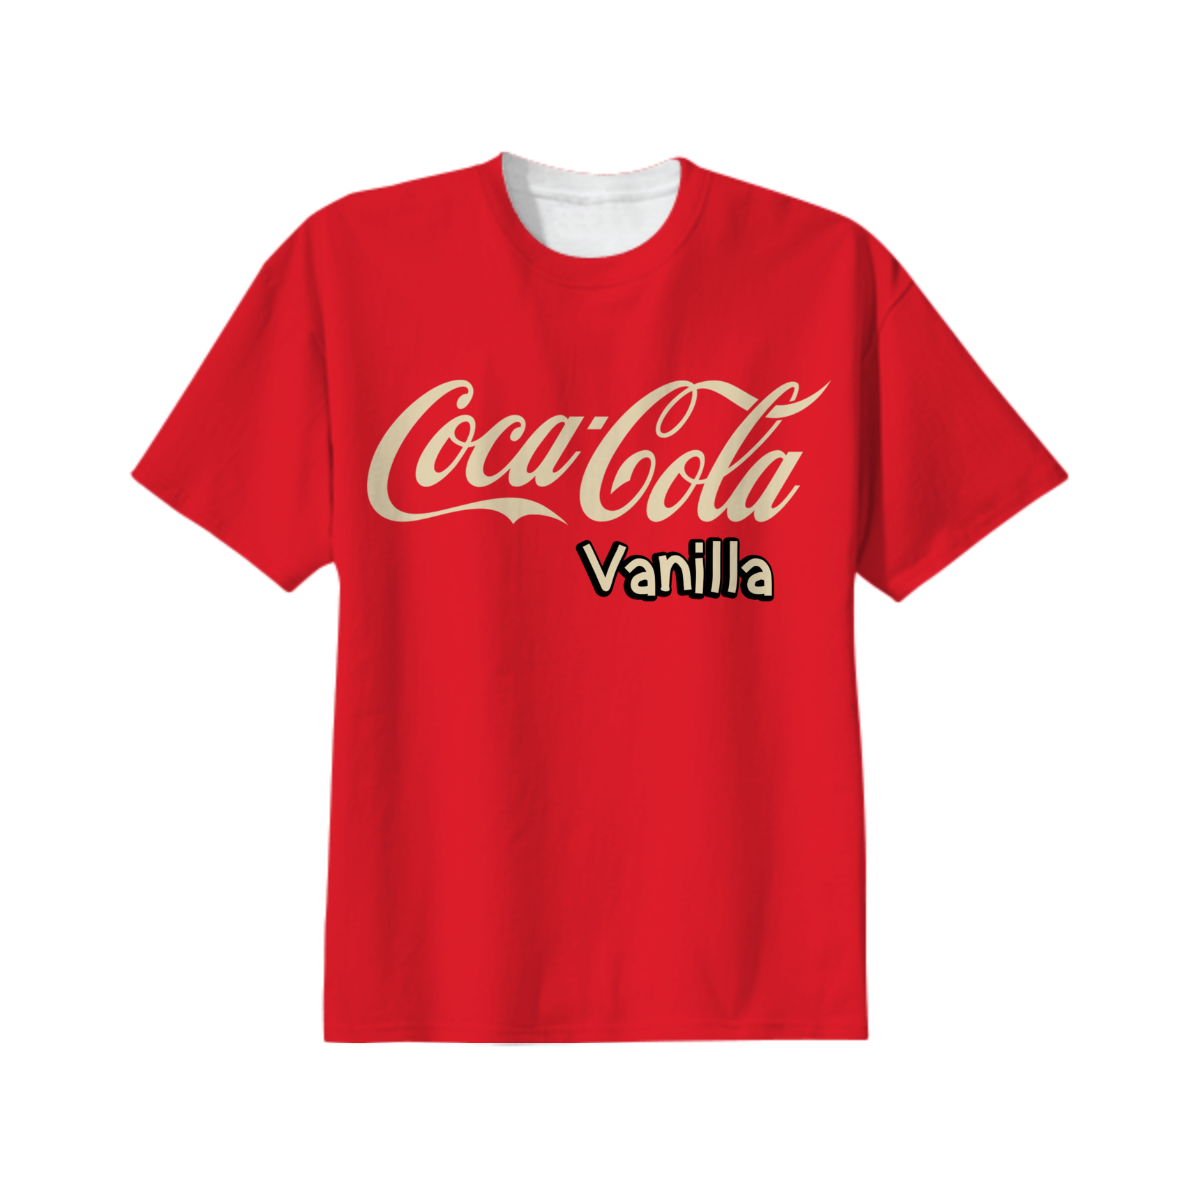 how to get coke stains out of white shirt